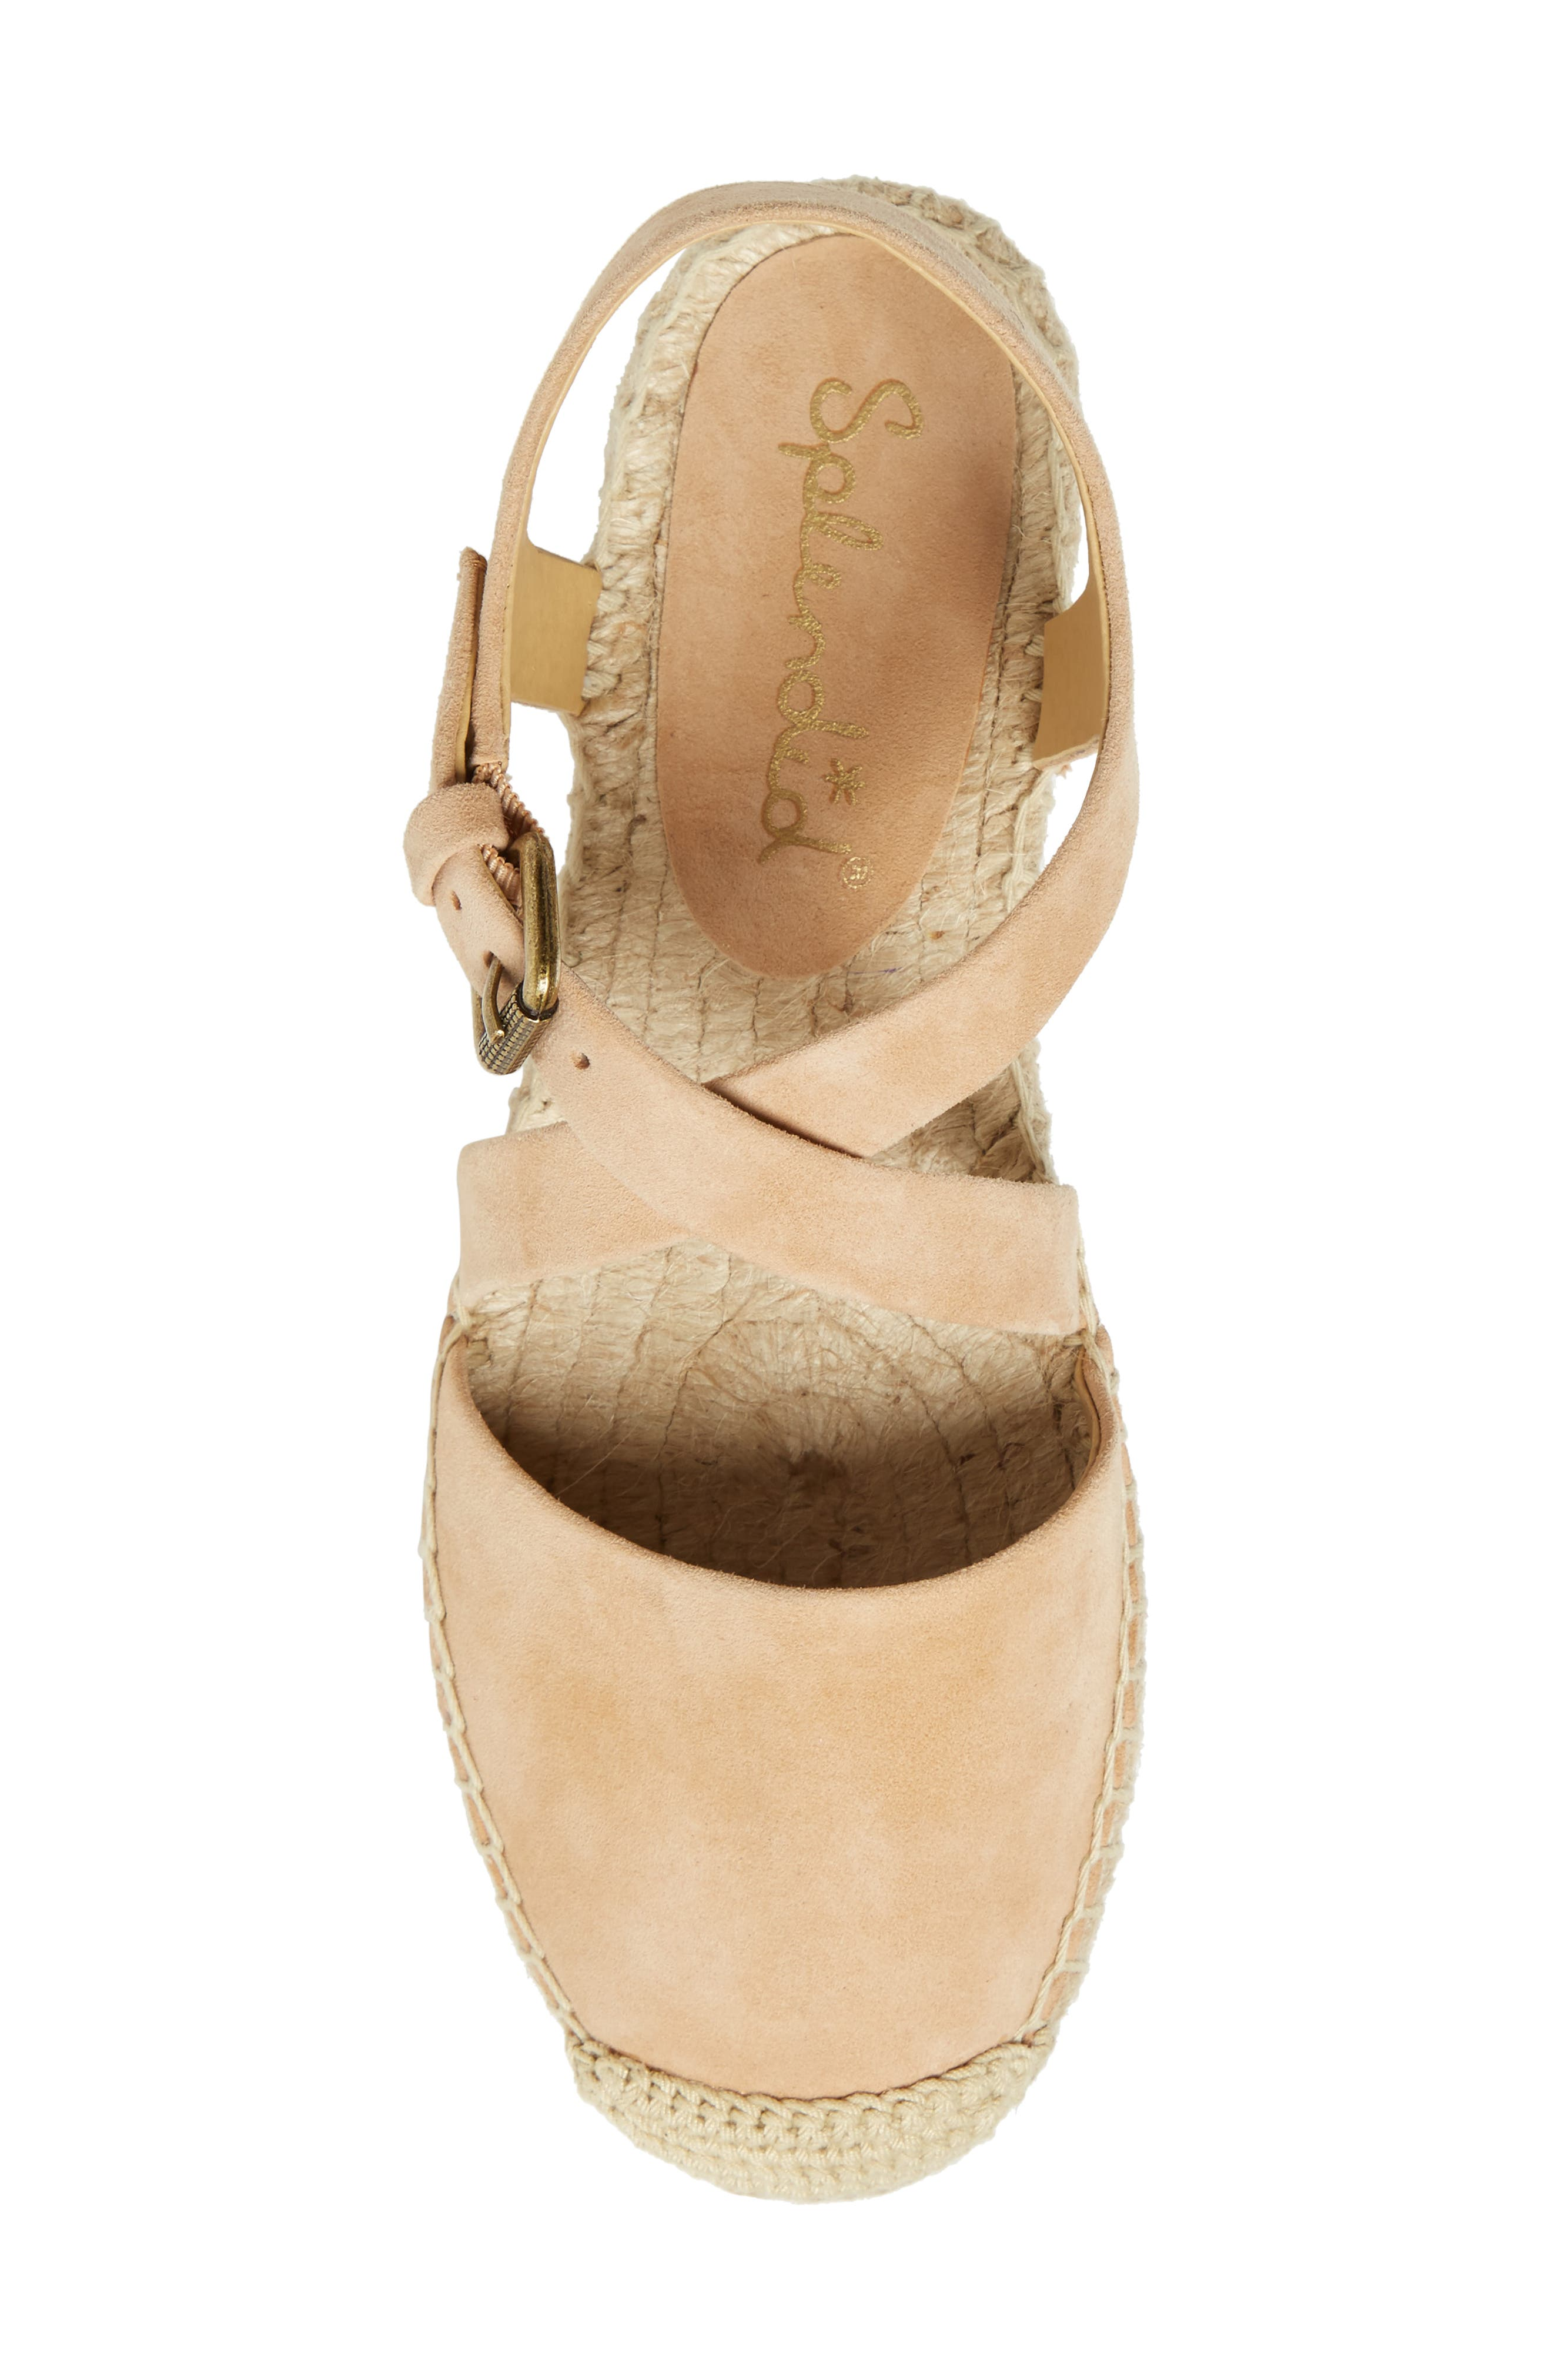 Foley Espadrille Flat,                             Alternate thumbnail 5, color,                             Nude Suede